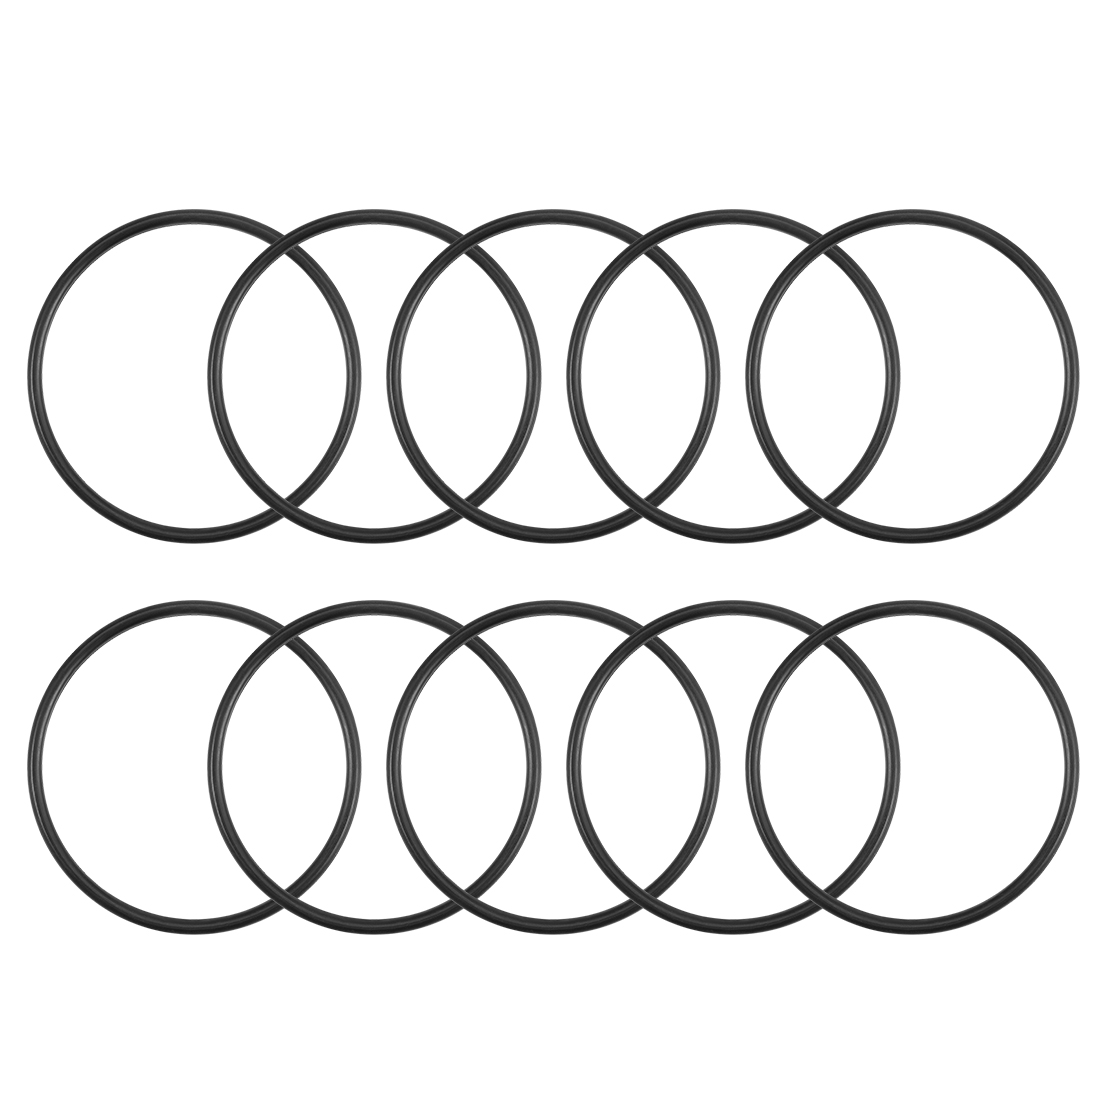 O-Rings Nitrile Rubber 35mm x 38.6mm x 1.8mm Round Seal Gasket 10Pcs